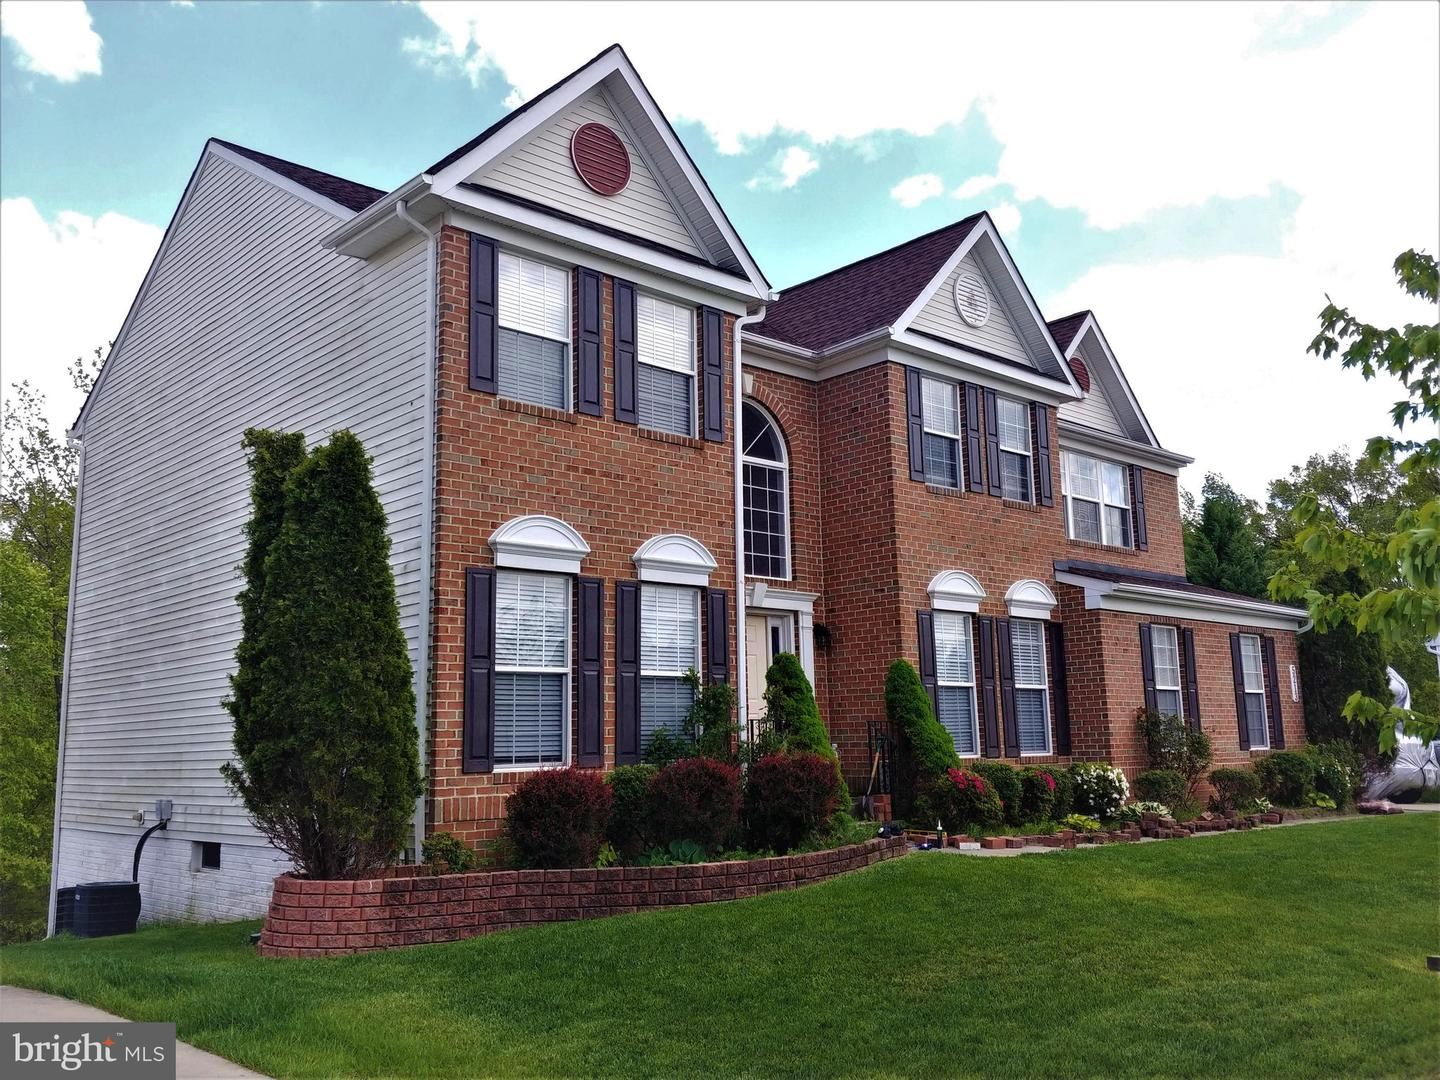 Property Image Of 5213 Braeburn Way In Perry Hall, Md